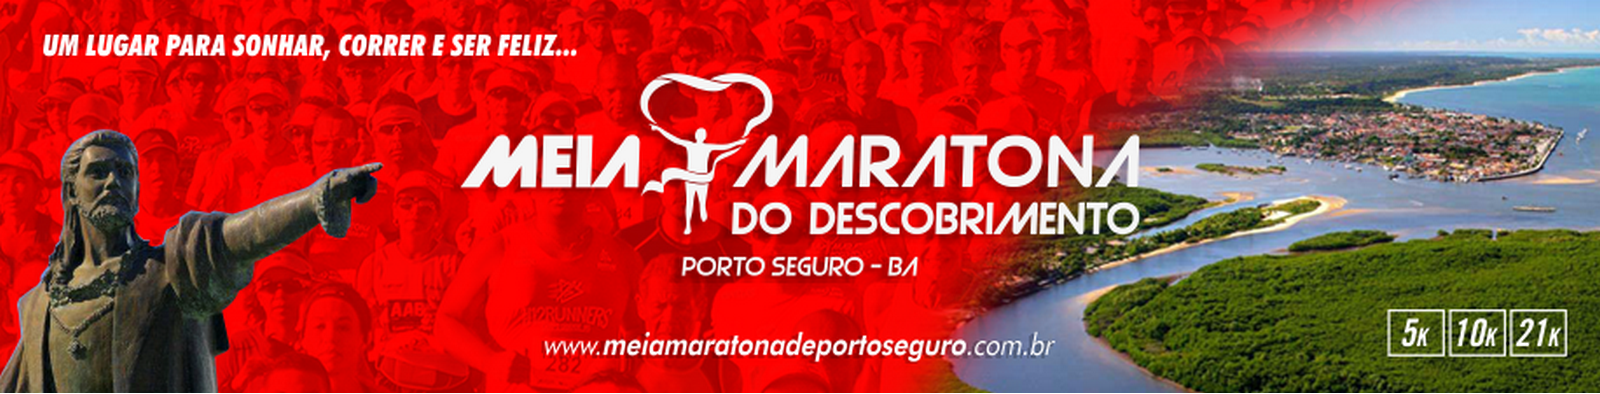 MEIA MARATONA DO DESCOBRIMENTO PORTO SEGURO - 2018